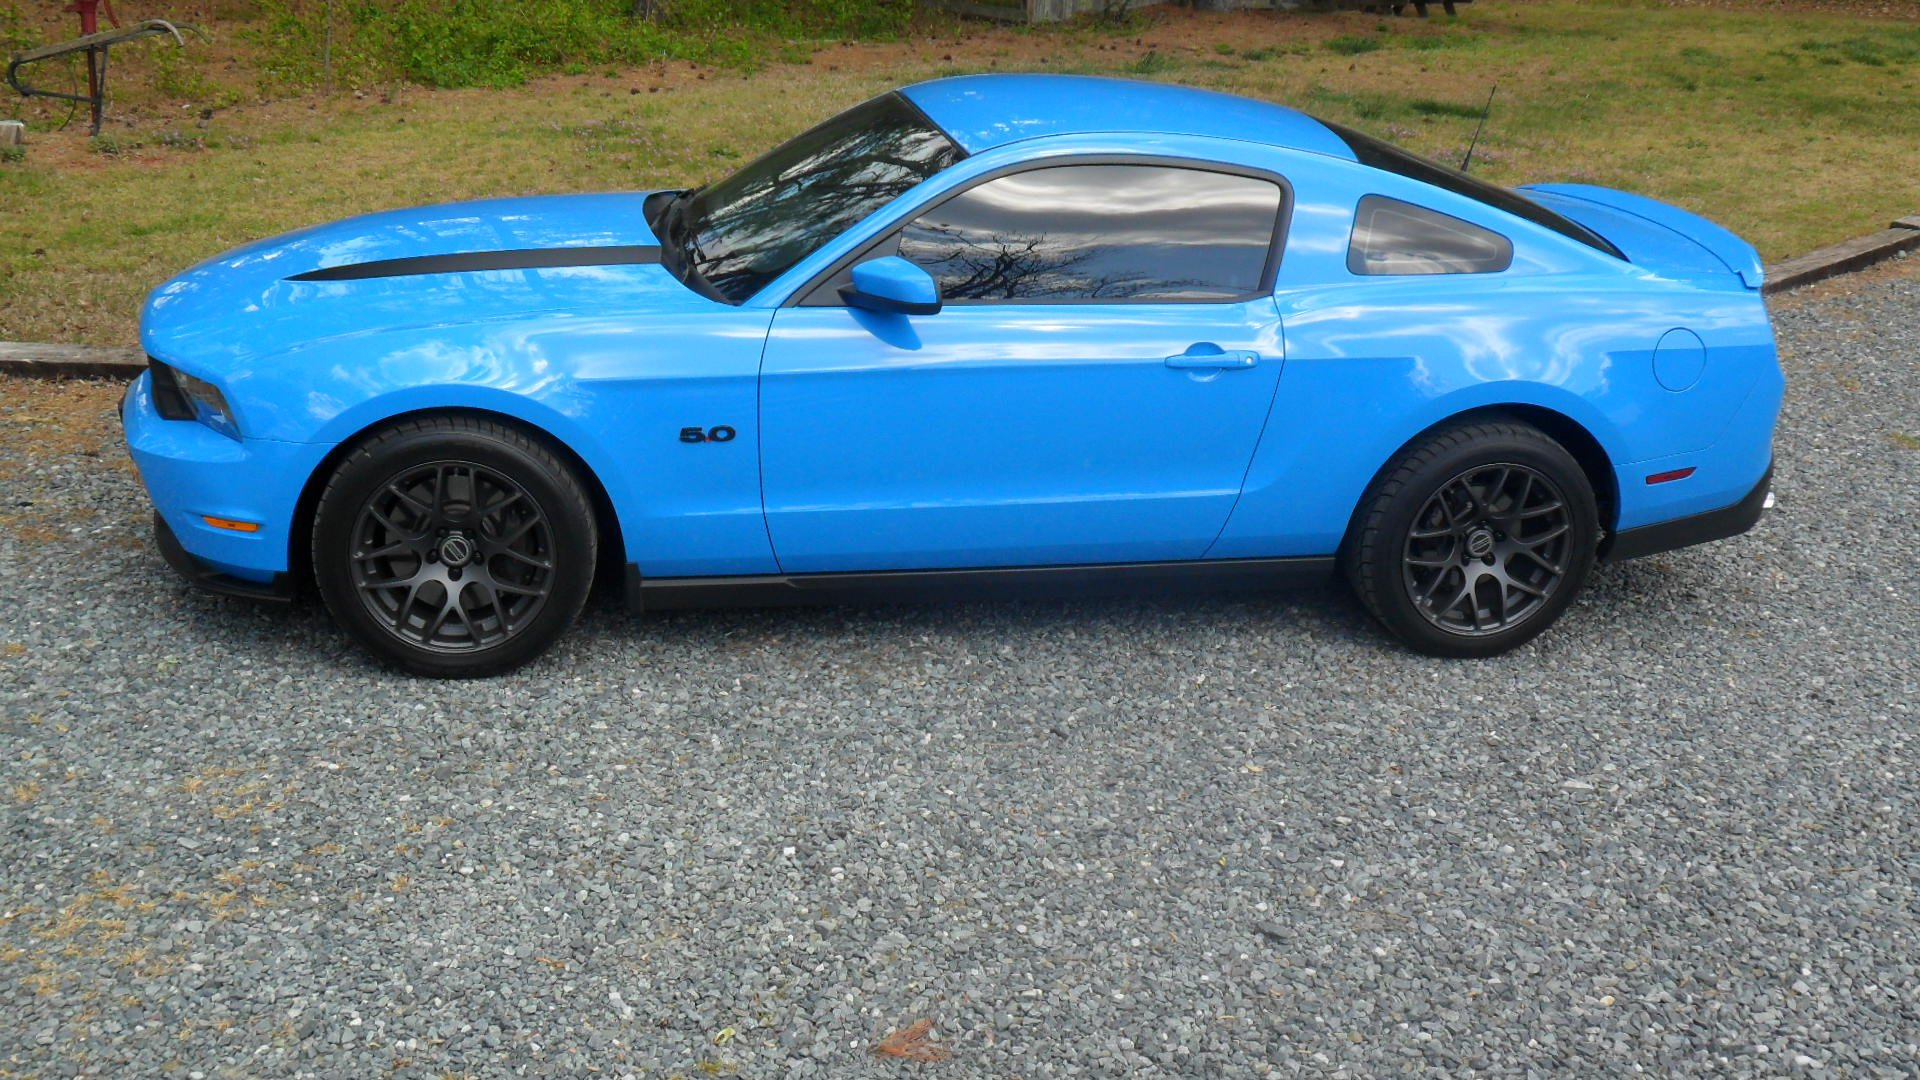 2012 Grabber Blue Mustang Gt One Year Later Ford